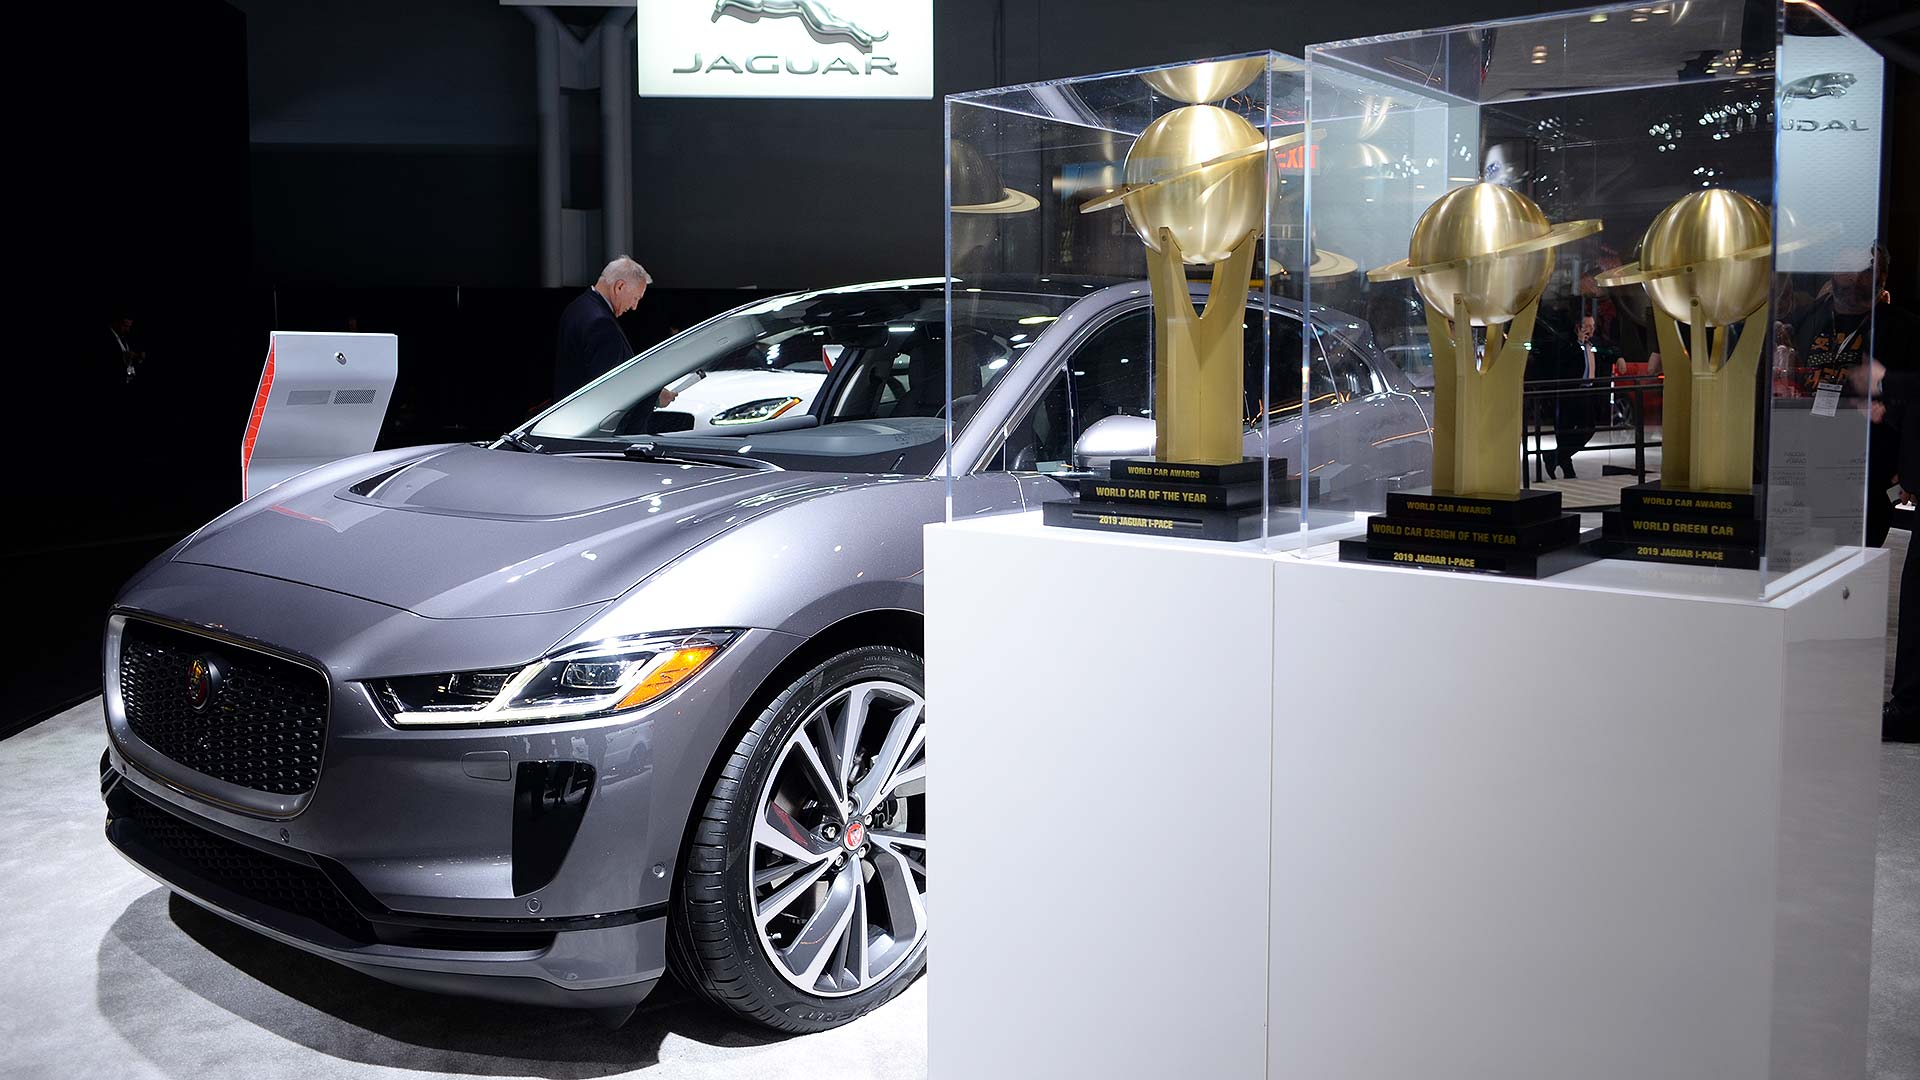 af93d5f3ef There were headlines even before the New York Auto Show had officially  opened